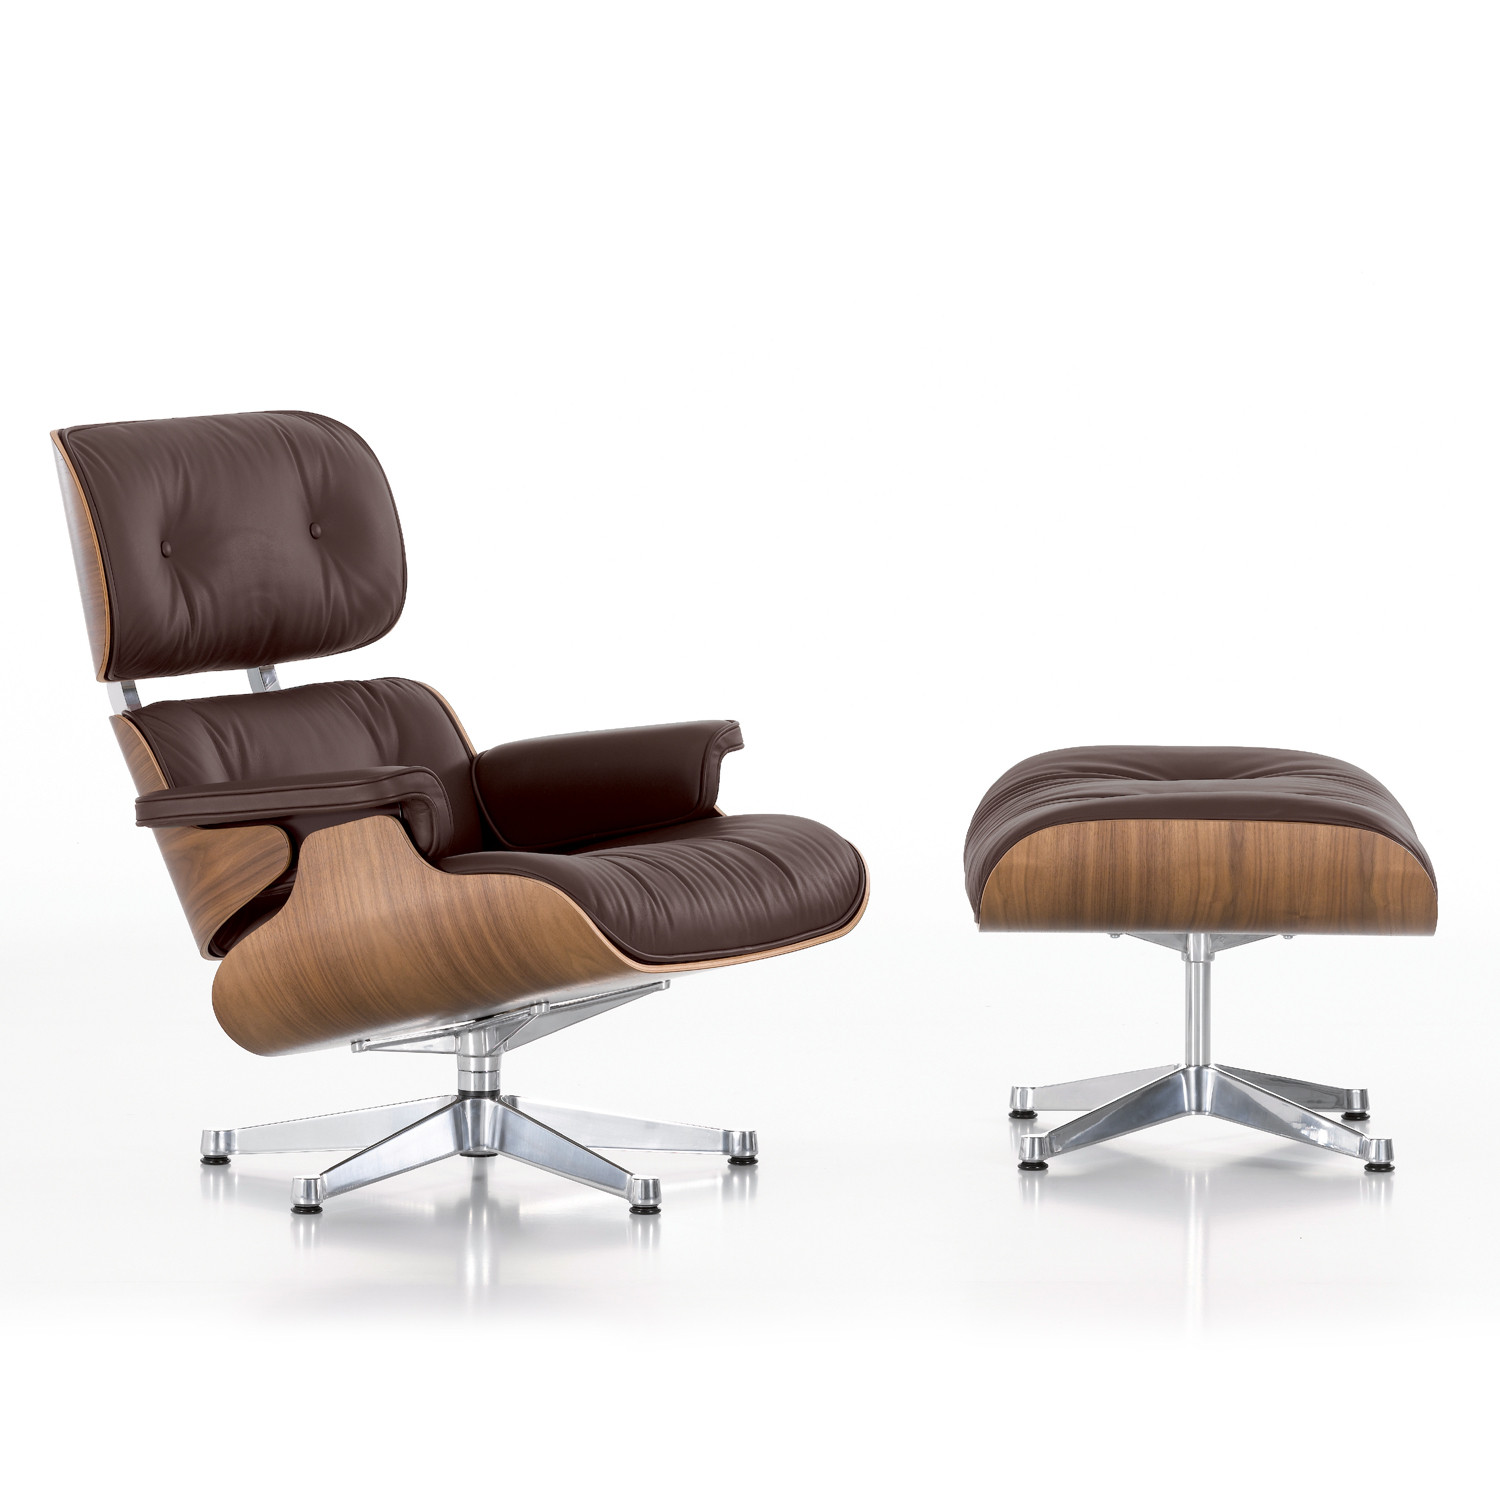 Eames lounge chair and ottoman vitra lounge chairs for Eames lounge chair nachbau